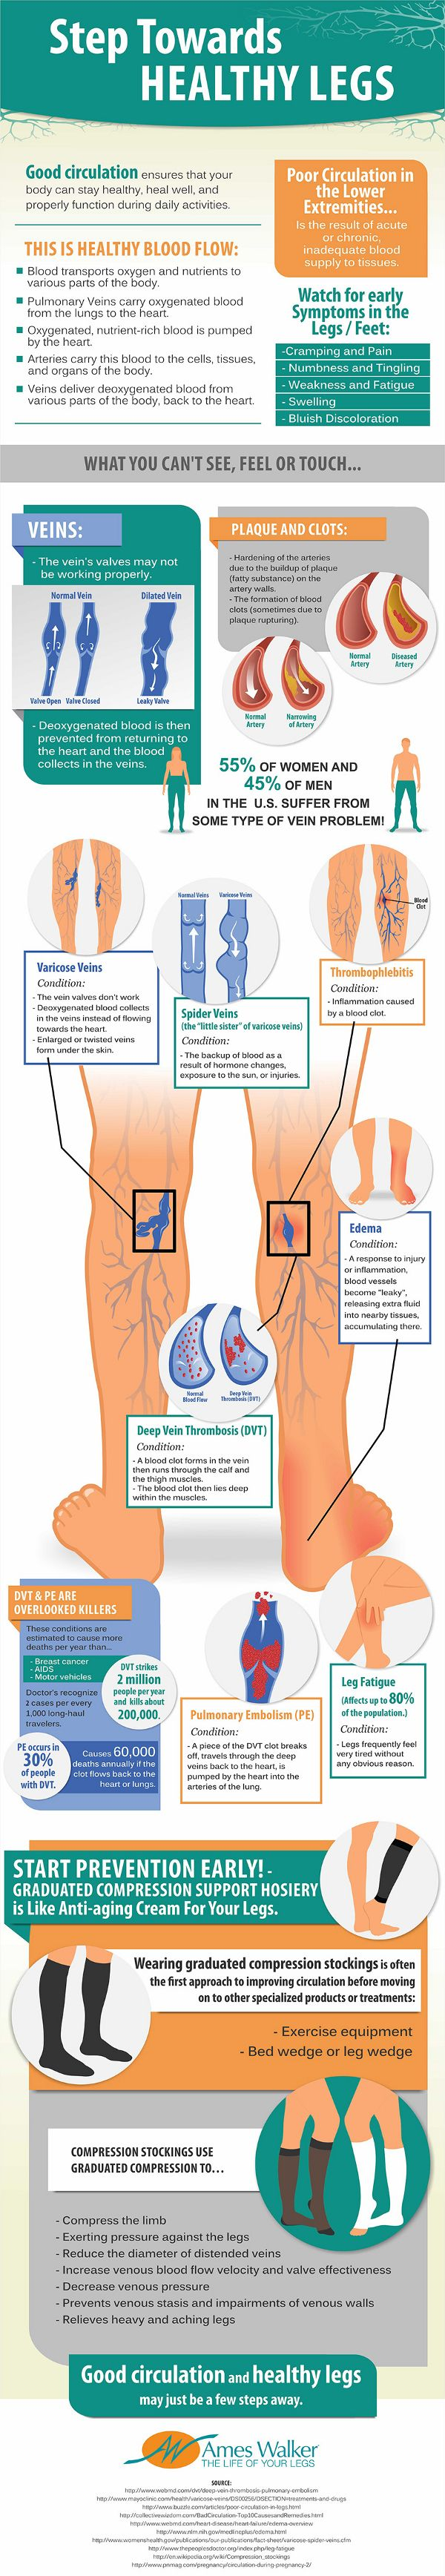 Guide to Improving Leg Circulation | Healthcare | Pinterest ...